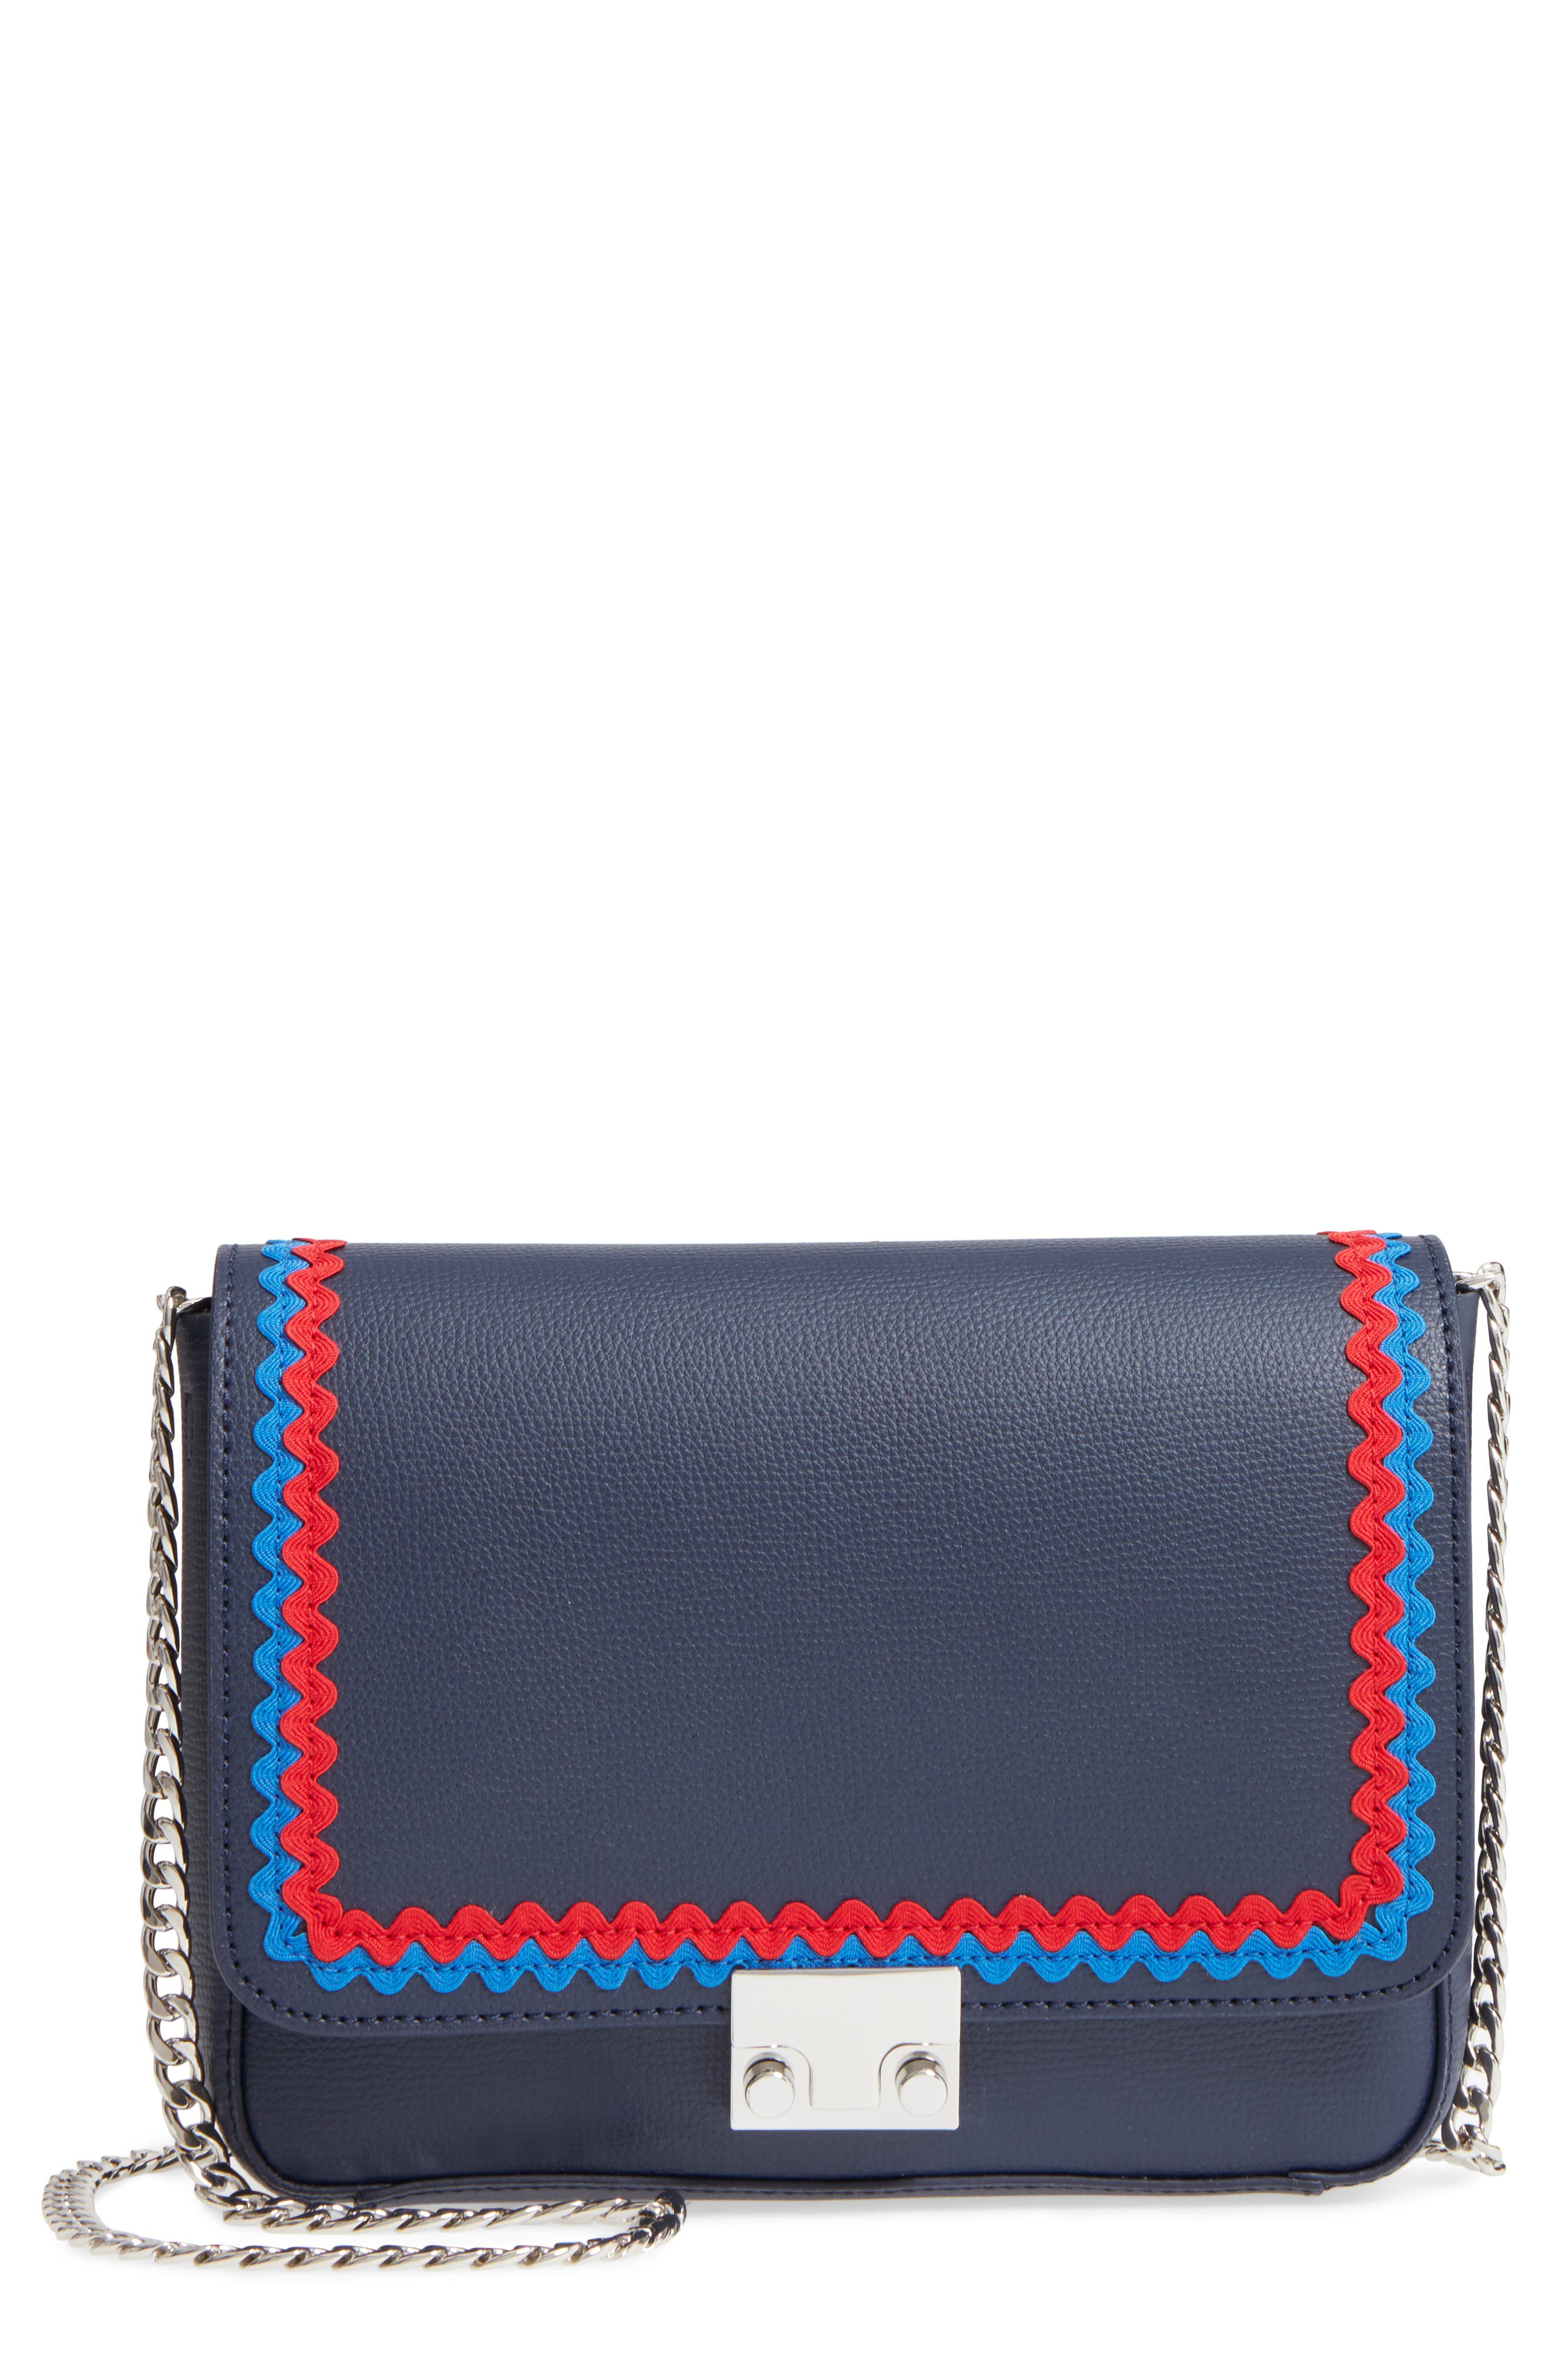 Lock Leather Flap Clutch/Shoulder Bag,                             Main thumbnail 1, color,                             Eclipse/ Multi